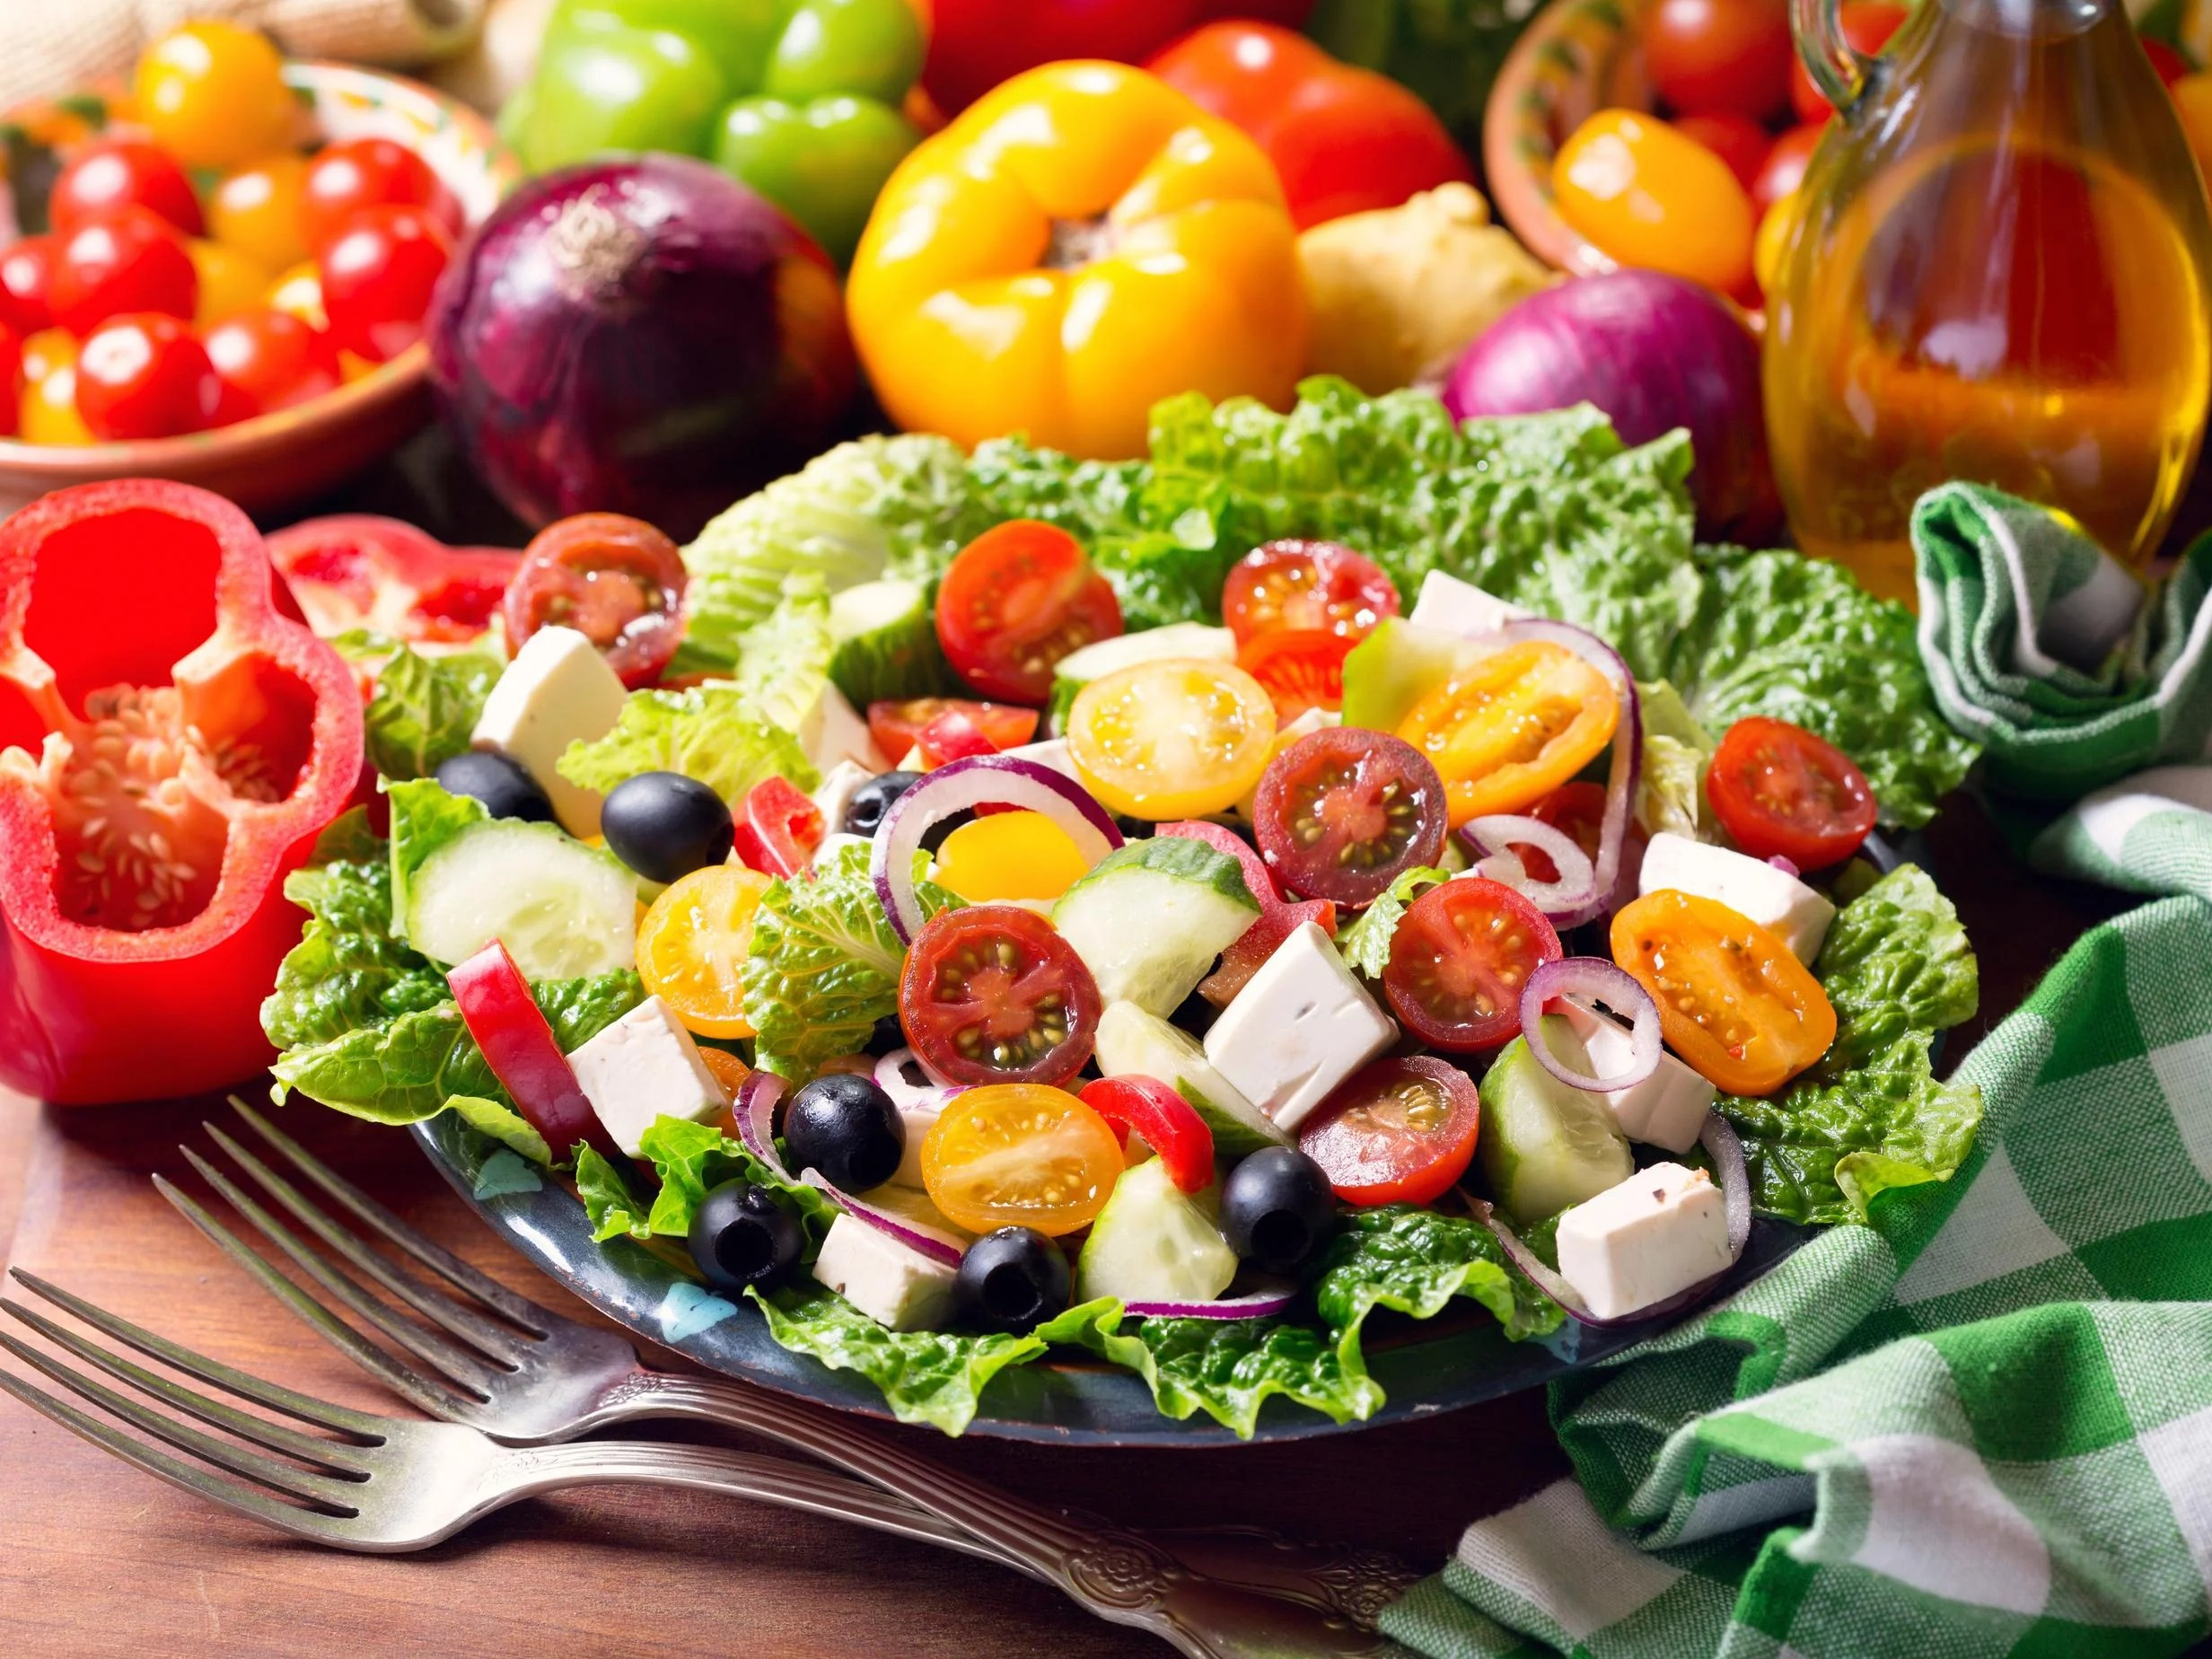 Eating a Mediterranean diet could help lower risk of